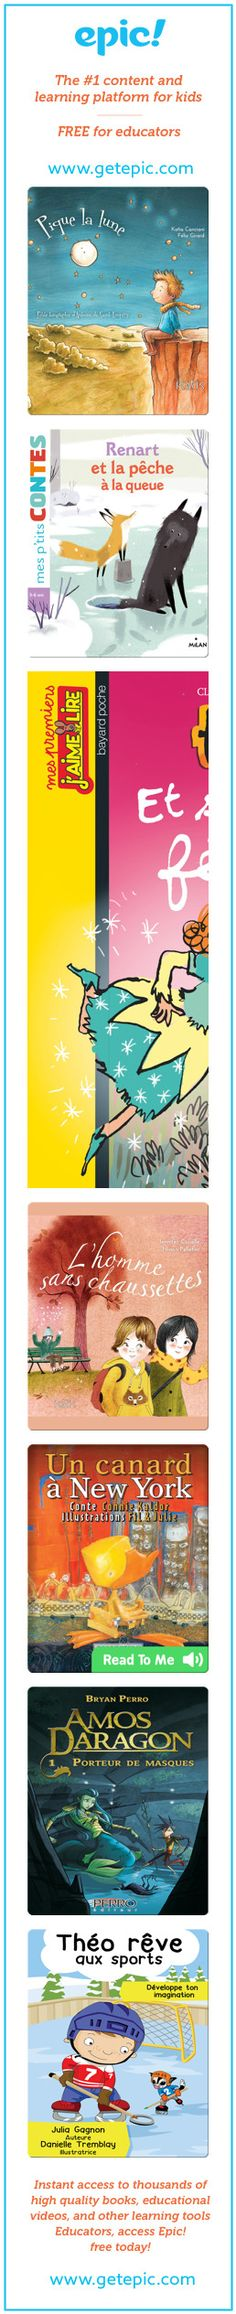 Say Bonjour to French Books! - 500 French books are now on Epic! - including picture books, chapter books, comic books, nonfiction and Read-to-Me books - all available to read in...